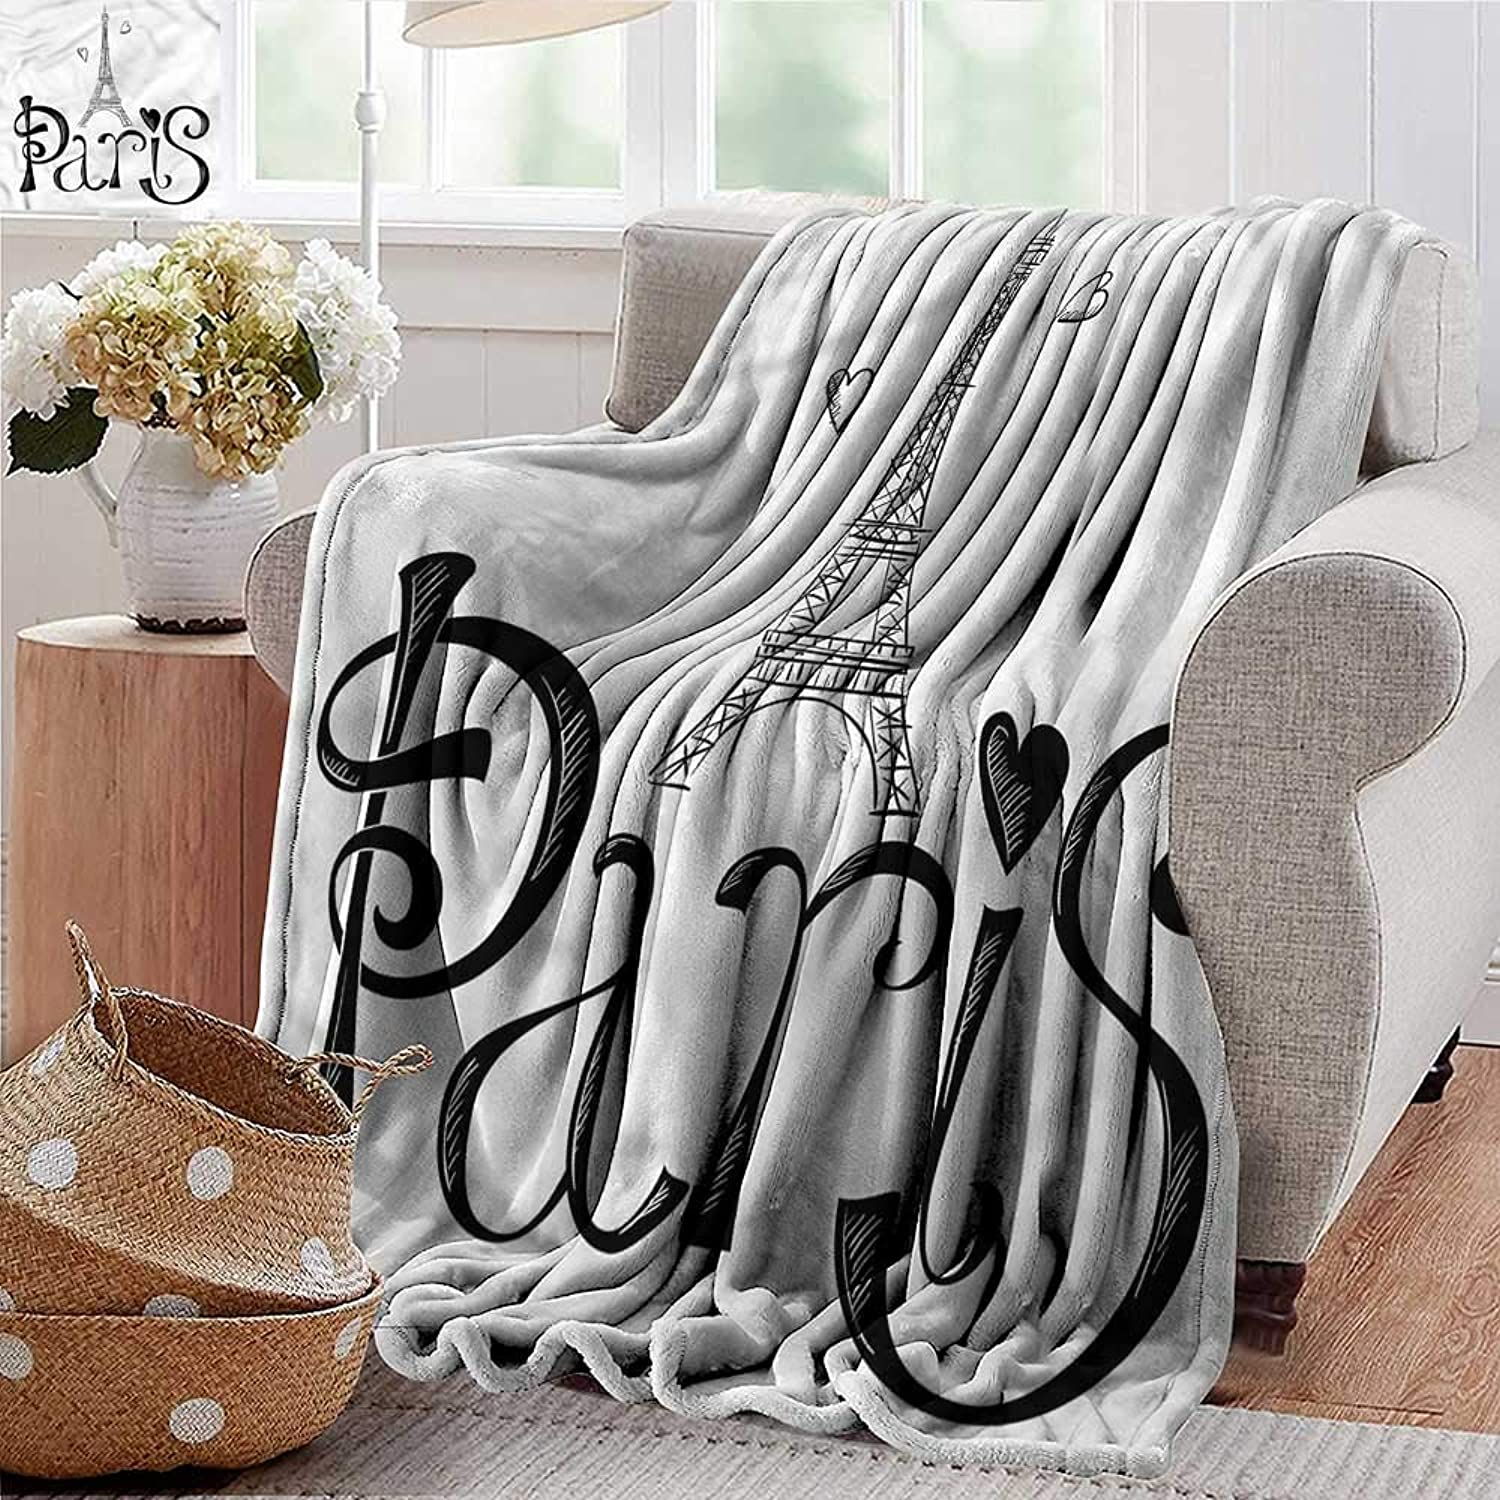 Summer Blanket Paris,France Heart Shapes Vacation Weighted Blanket for Adults Kids, Better Deeper Sleep 35 x60